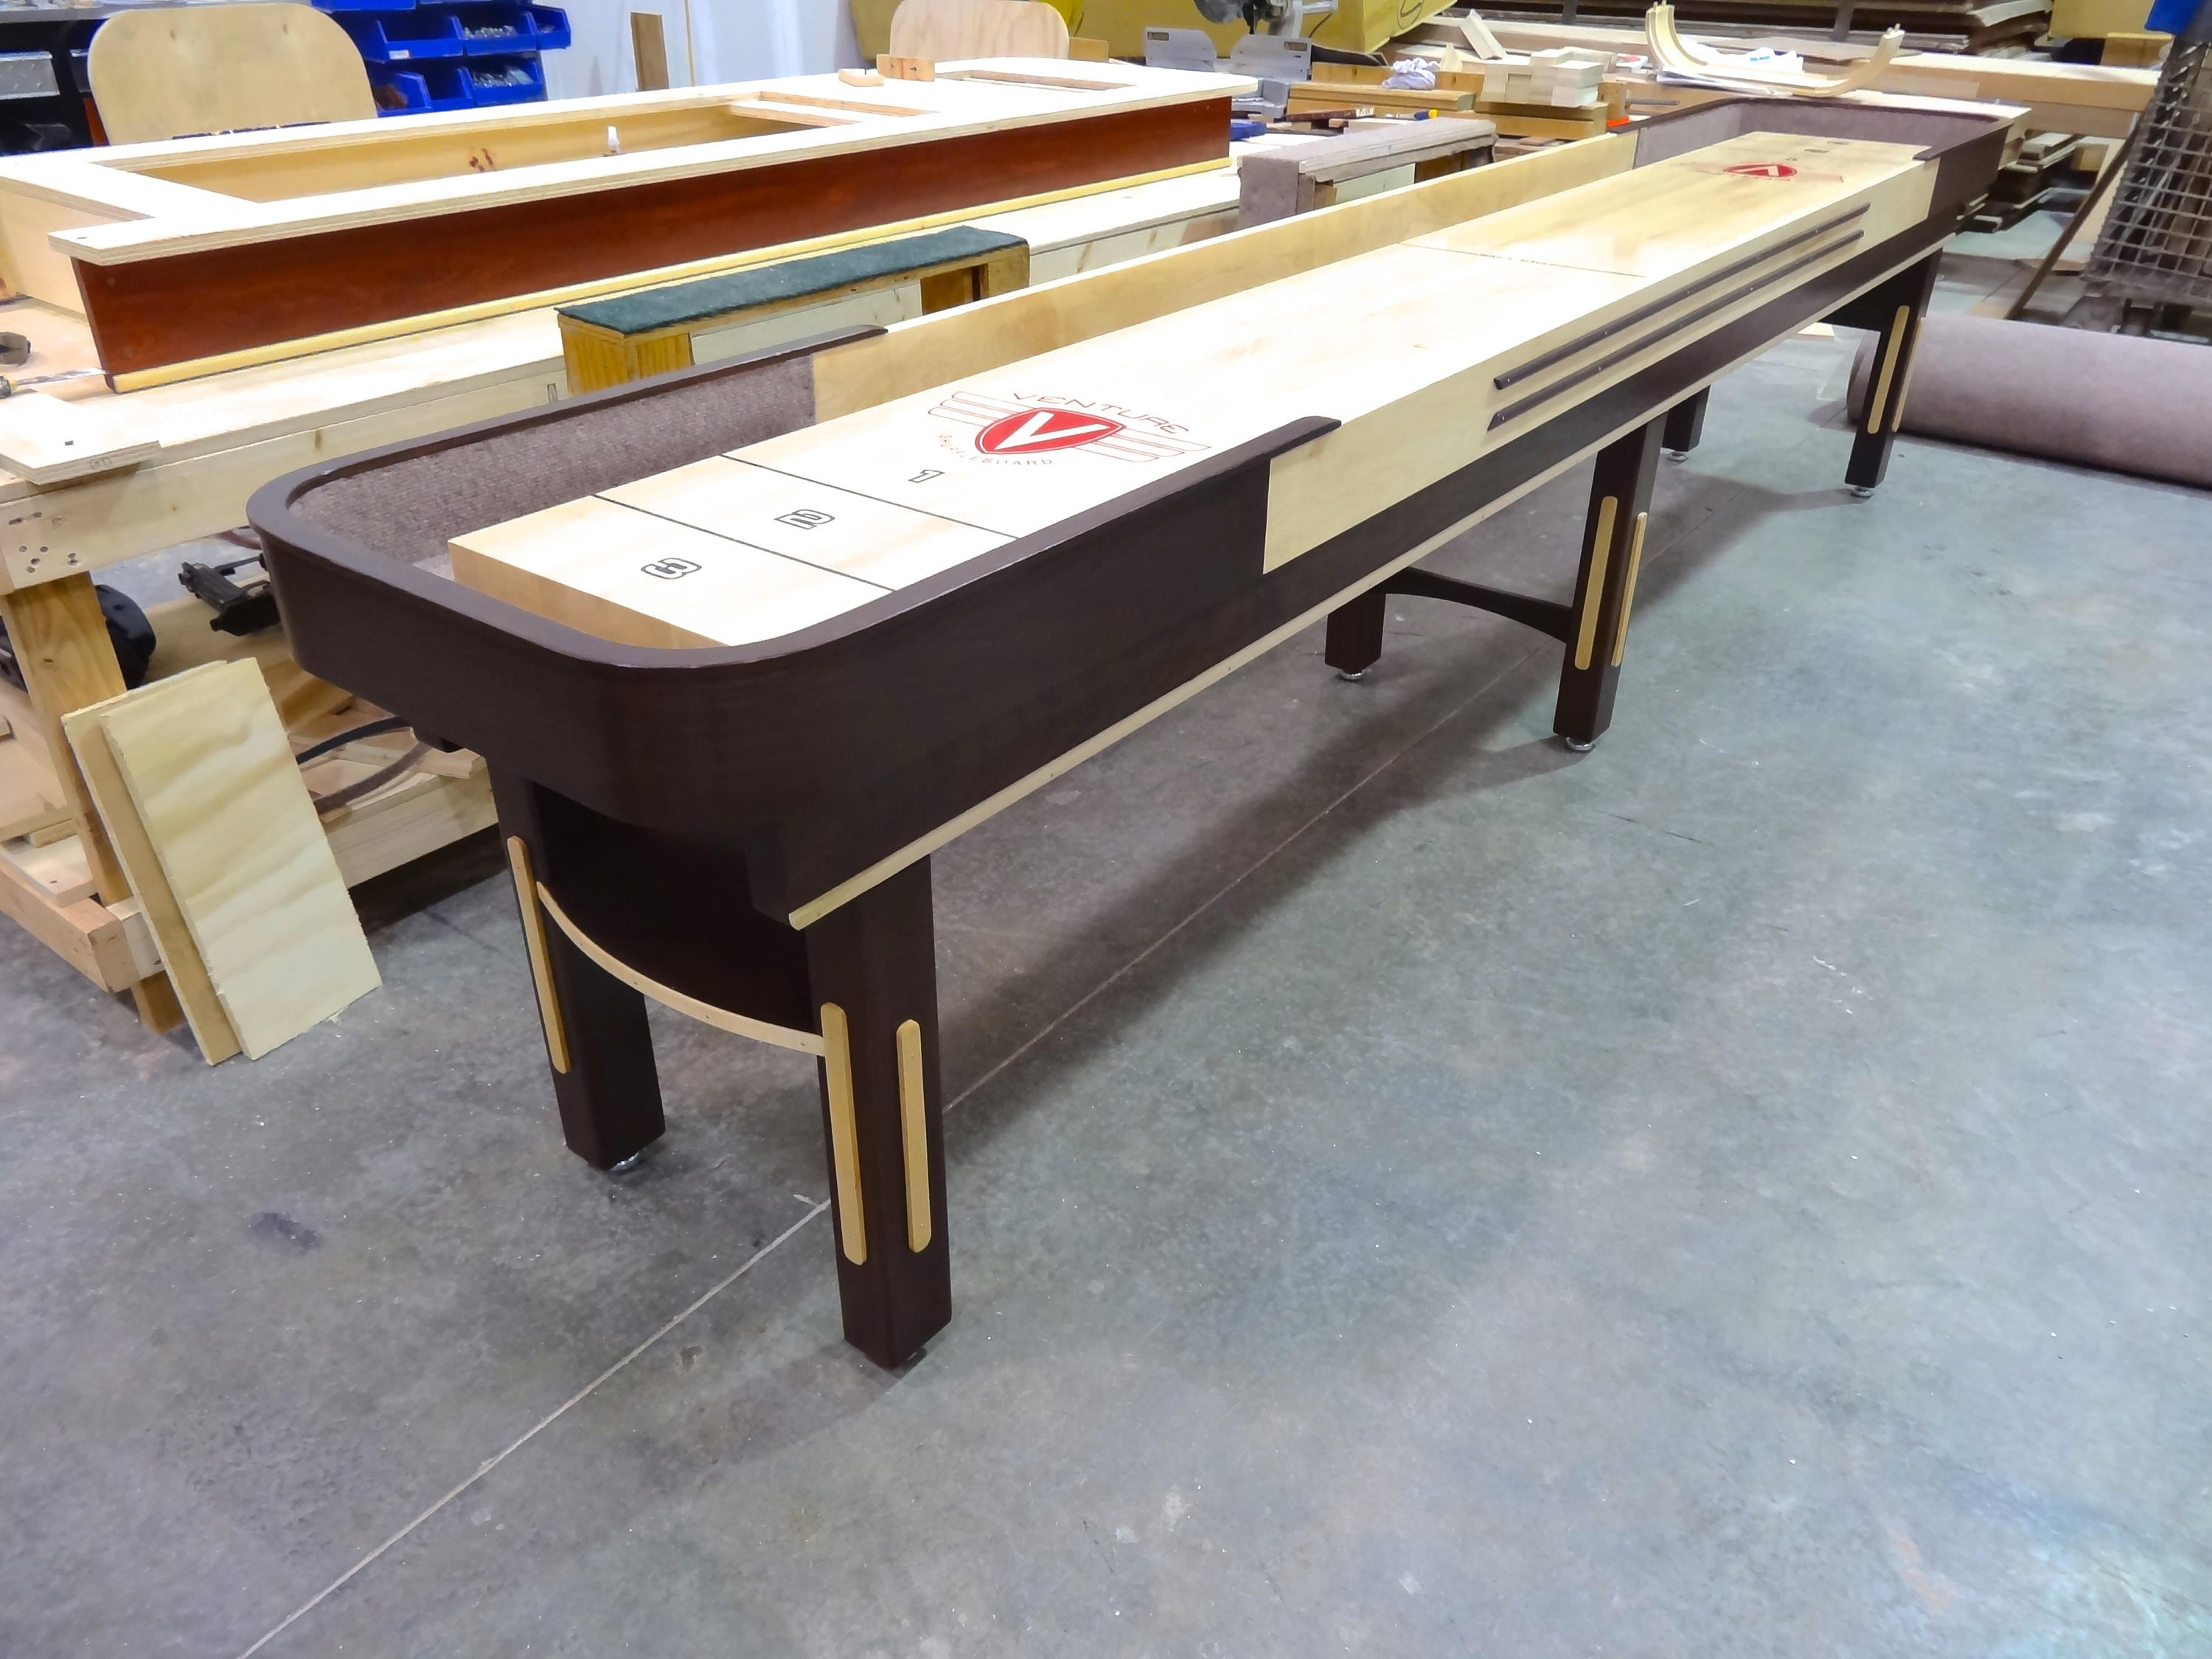 shuffleboard tables of by thrones sawyertwain table gaming rustic butcher game pin room billiards pool furniture block on